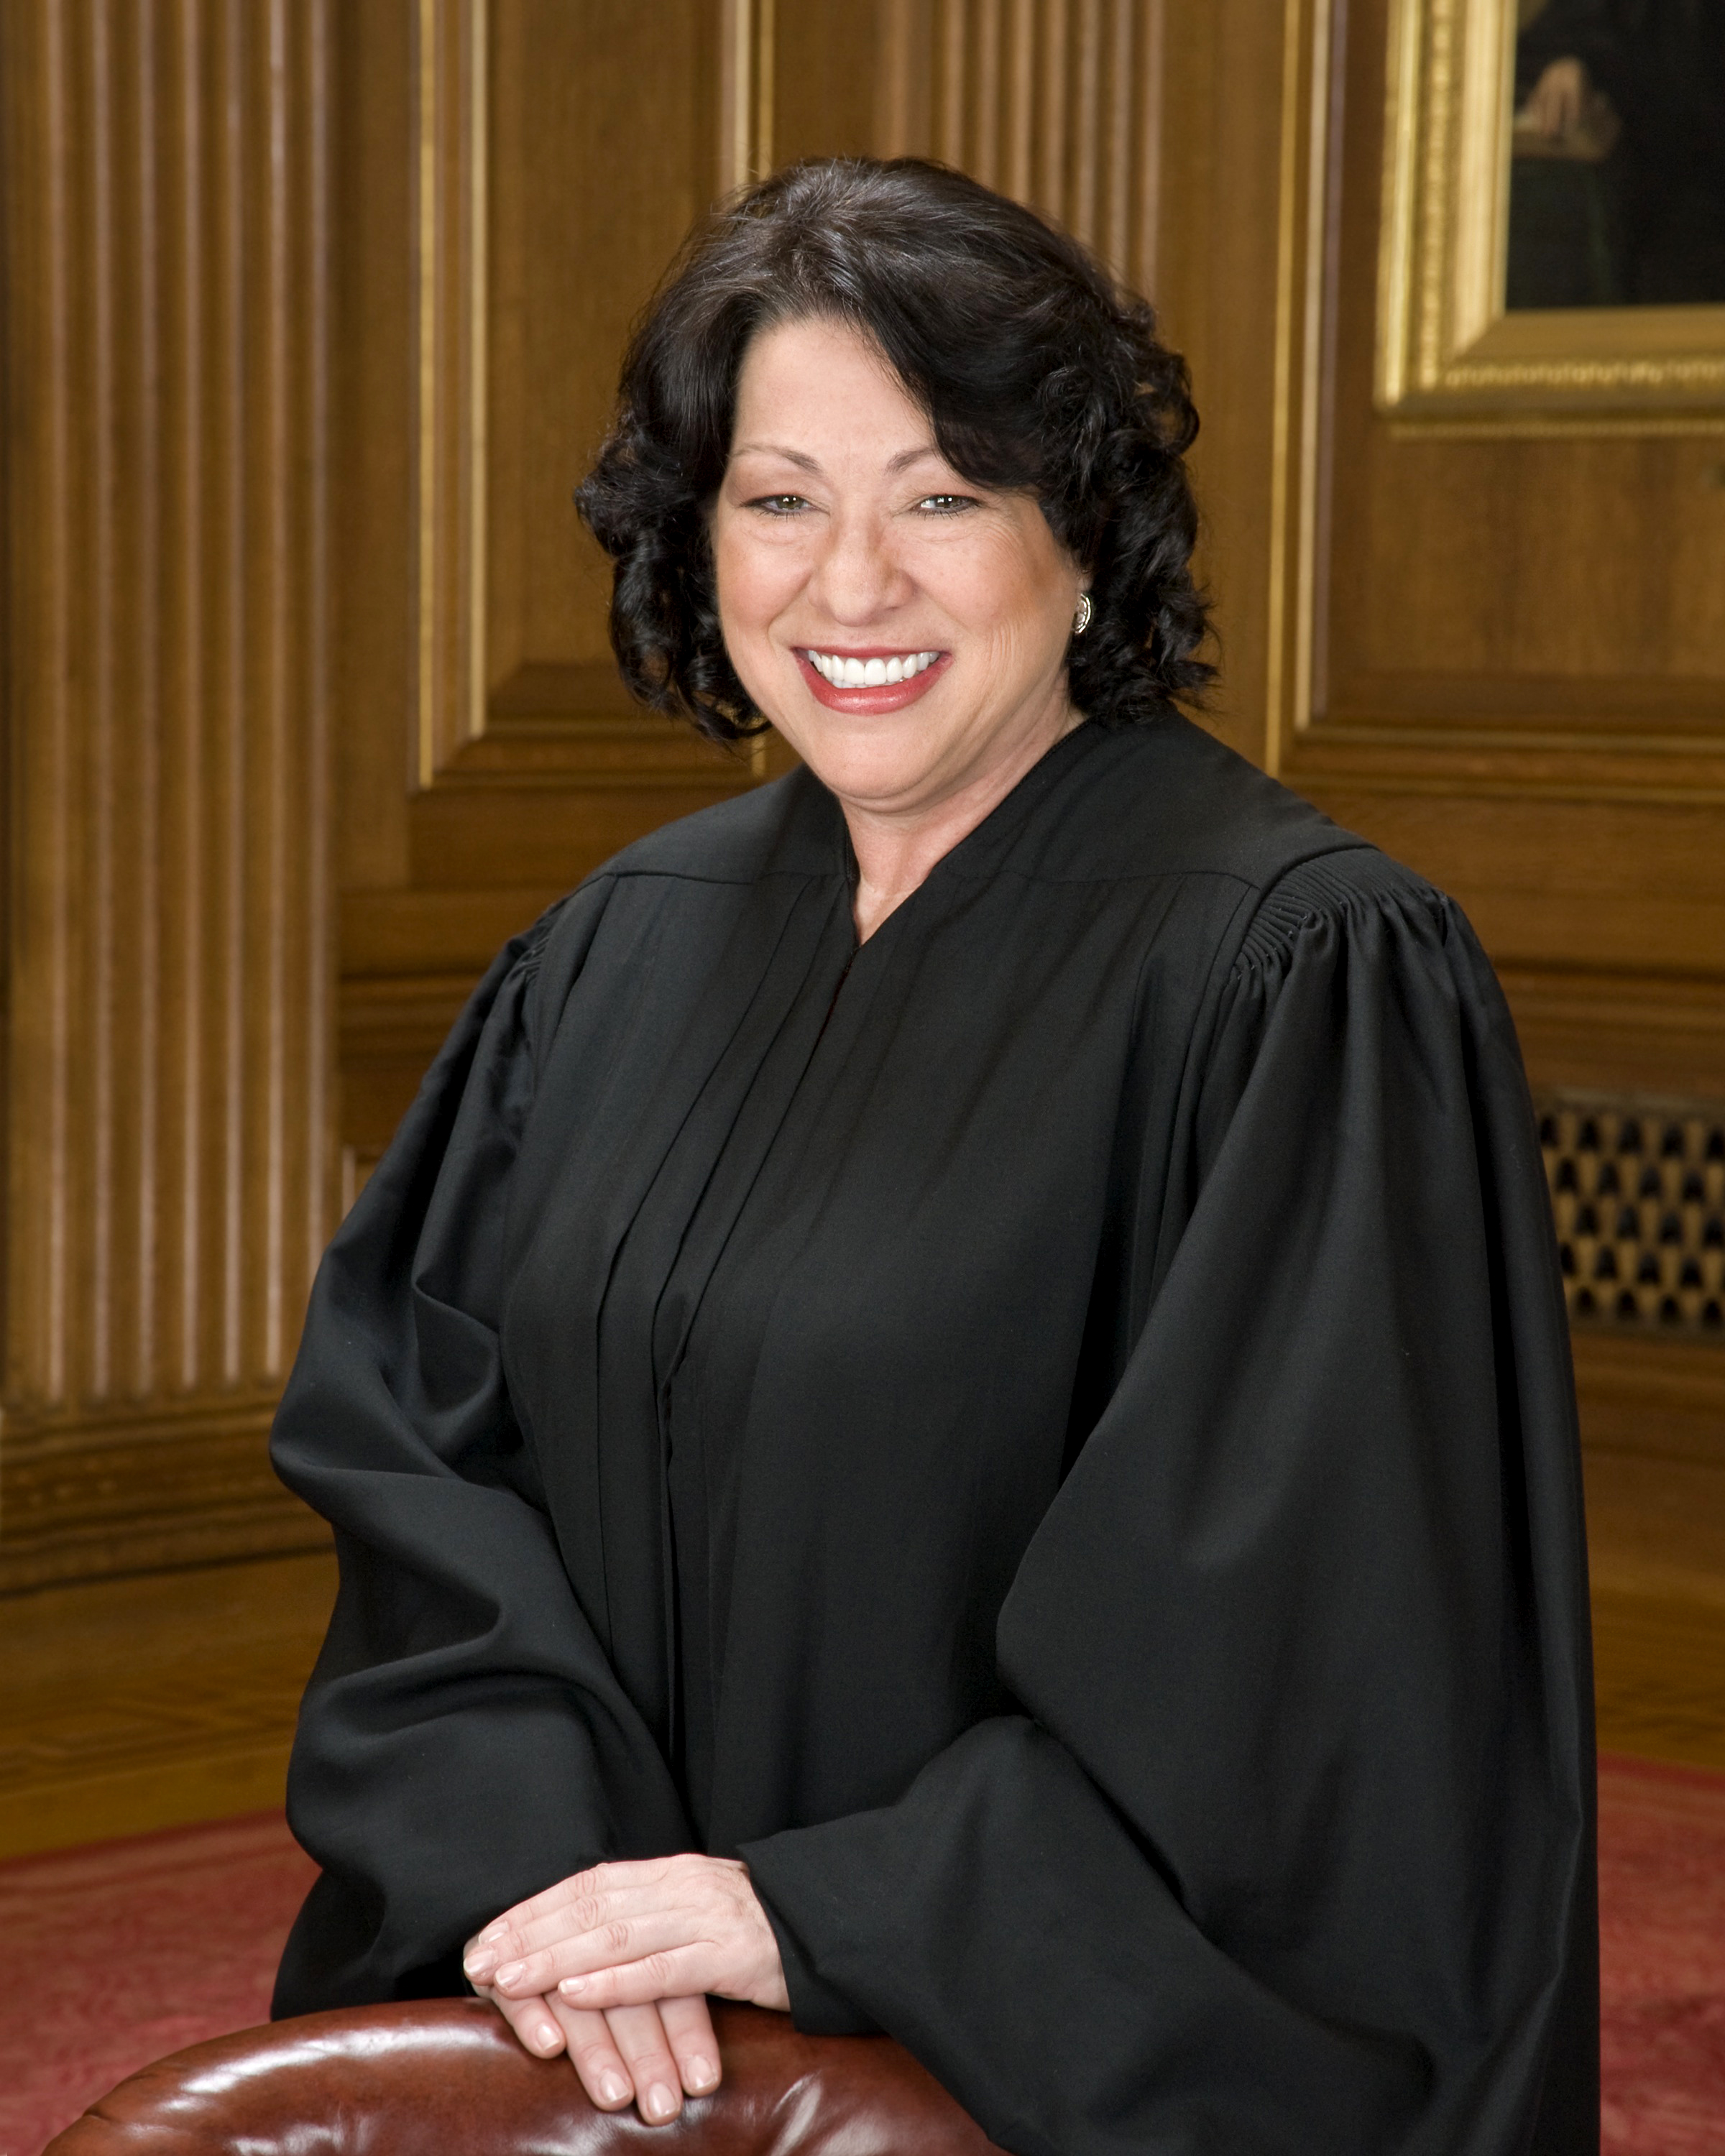 Sonia Sotomayor's Dissent Evokes Racial Profiling and Mass Imprisonment